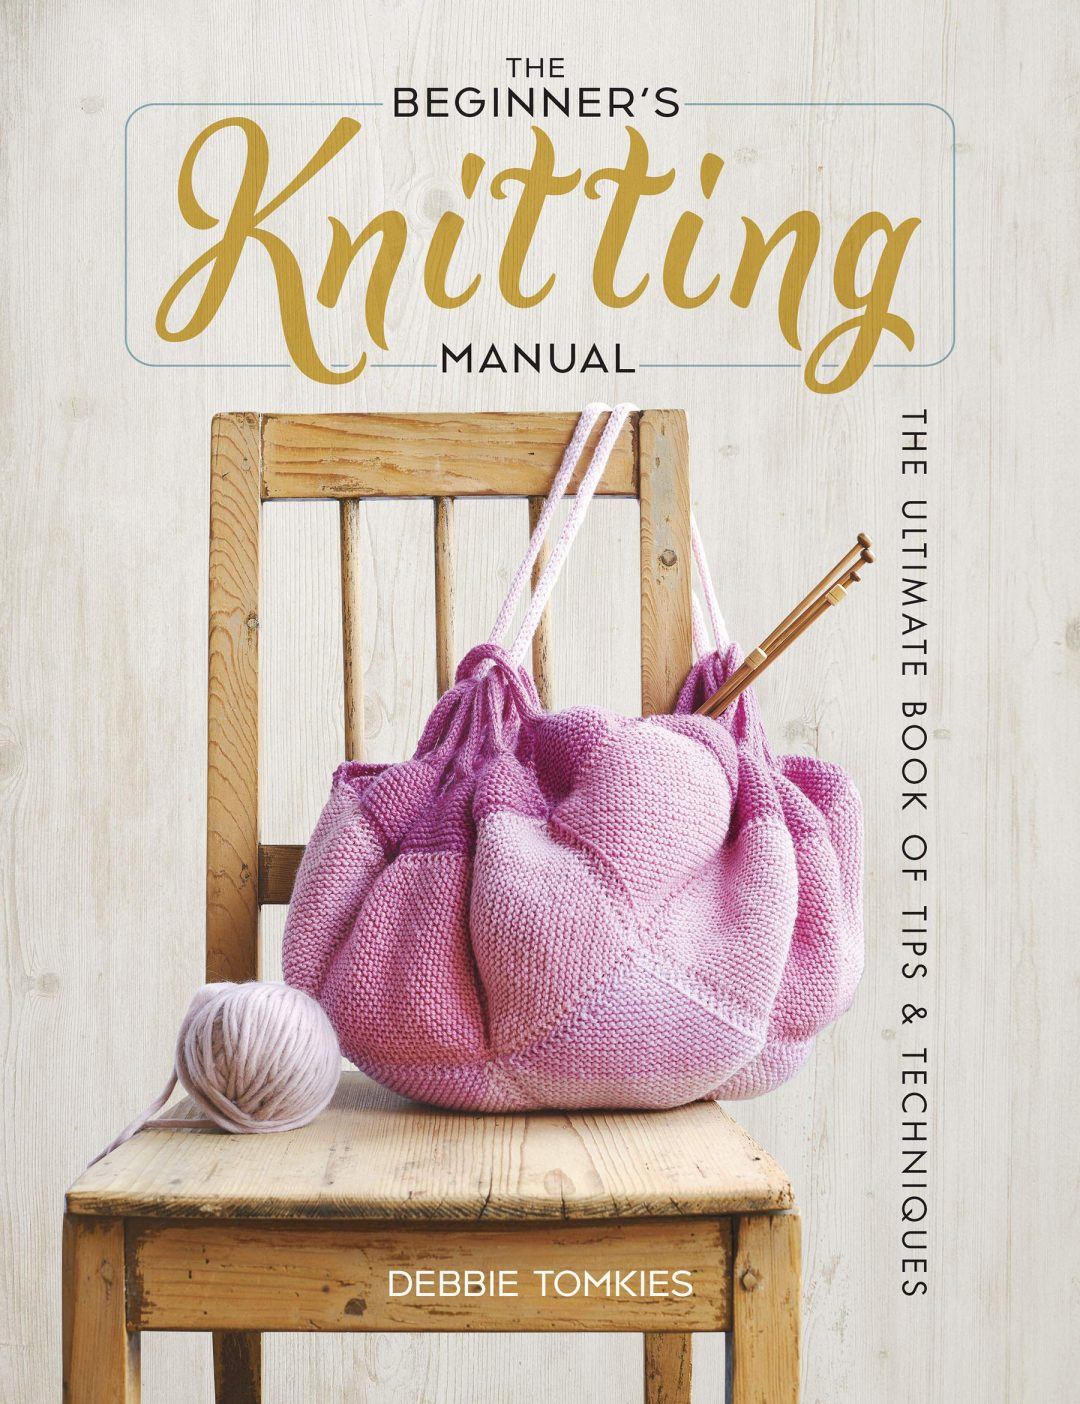 New Needlecraft Books from Dover